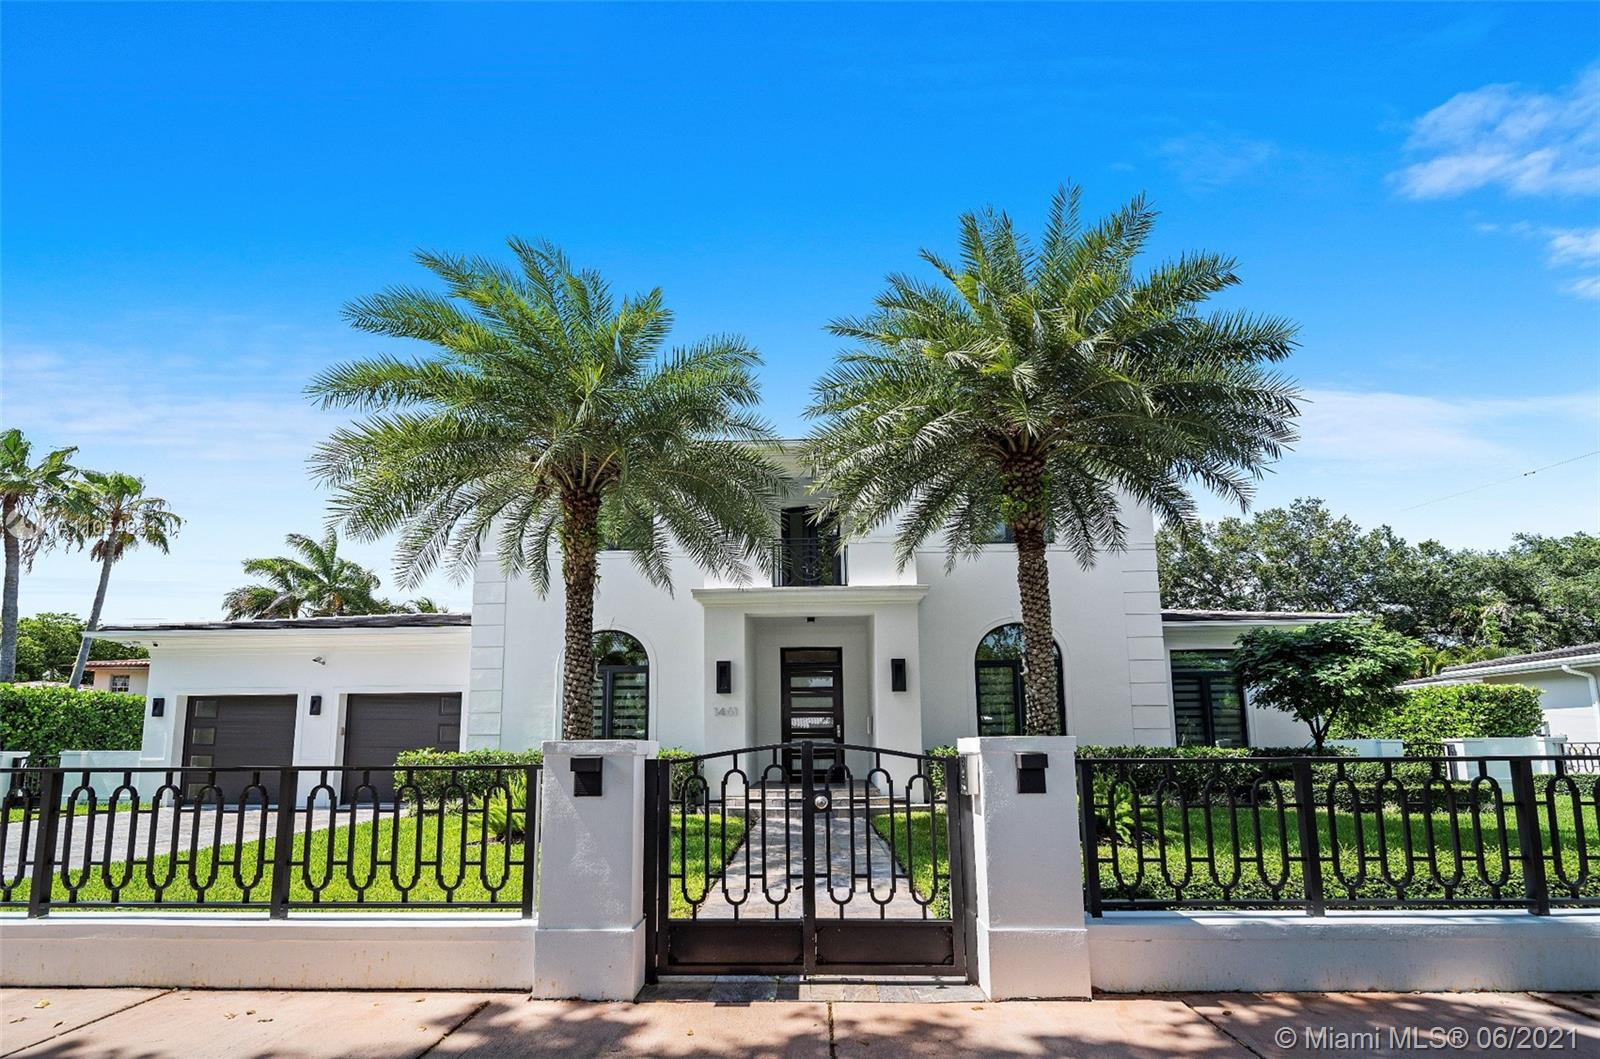 This beautiful, modern home built in 2017 is situated on a gated 11,500 SF lot located in the highly desired area of Coral Gables.   Boasting 5,500 SF of living area, with 5 bedrooms and 5.5 bathrooms, and a clearly defined floorplan, there's room for the whole family to live, work, and play!  Sophisticated & elegant finishes throughout the home, including a spacious master bedroom with a terrace that overlooks the pool and garden area.   Sit back and relax in your home theatre or entertain outdoors by your fully-equipped outdoor kitchen, patio, and sleek pool. With terraces throughout, this home makes indoor-outdoor living look easy.   Just minutes from Riviera Golf Course, the University of Miami, and the Shops at Merrick Park, you don't want to miss out on this gem of a home.